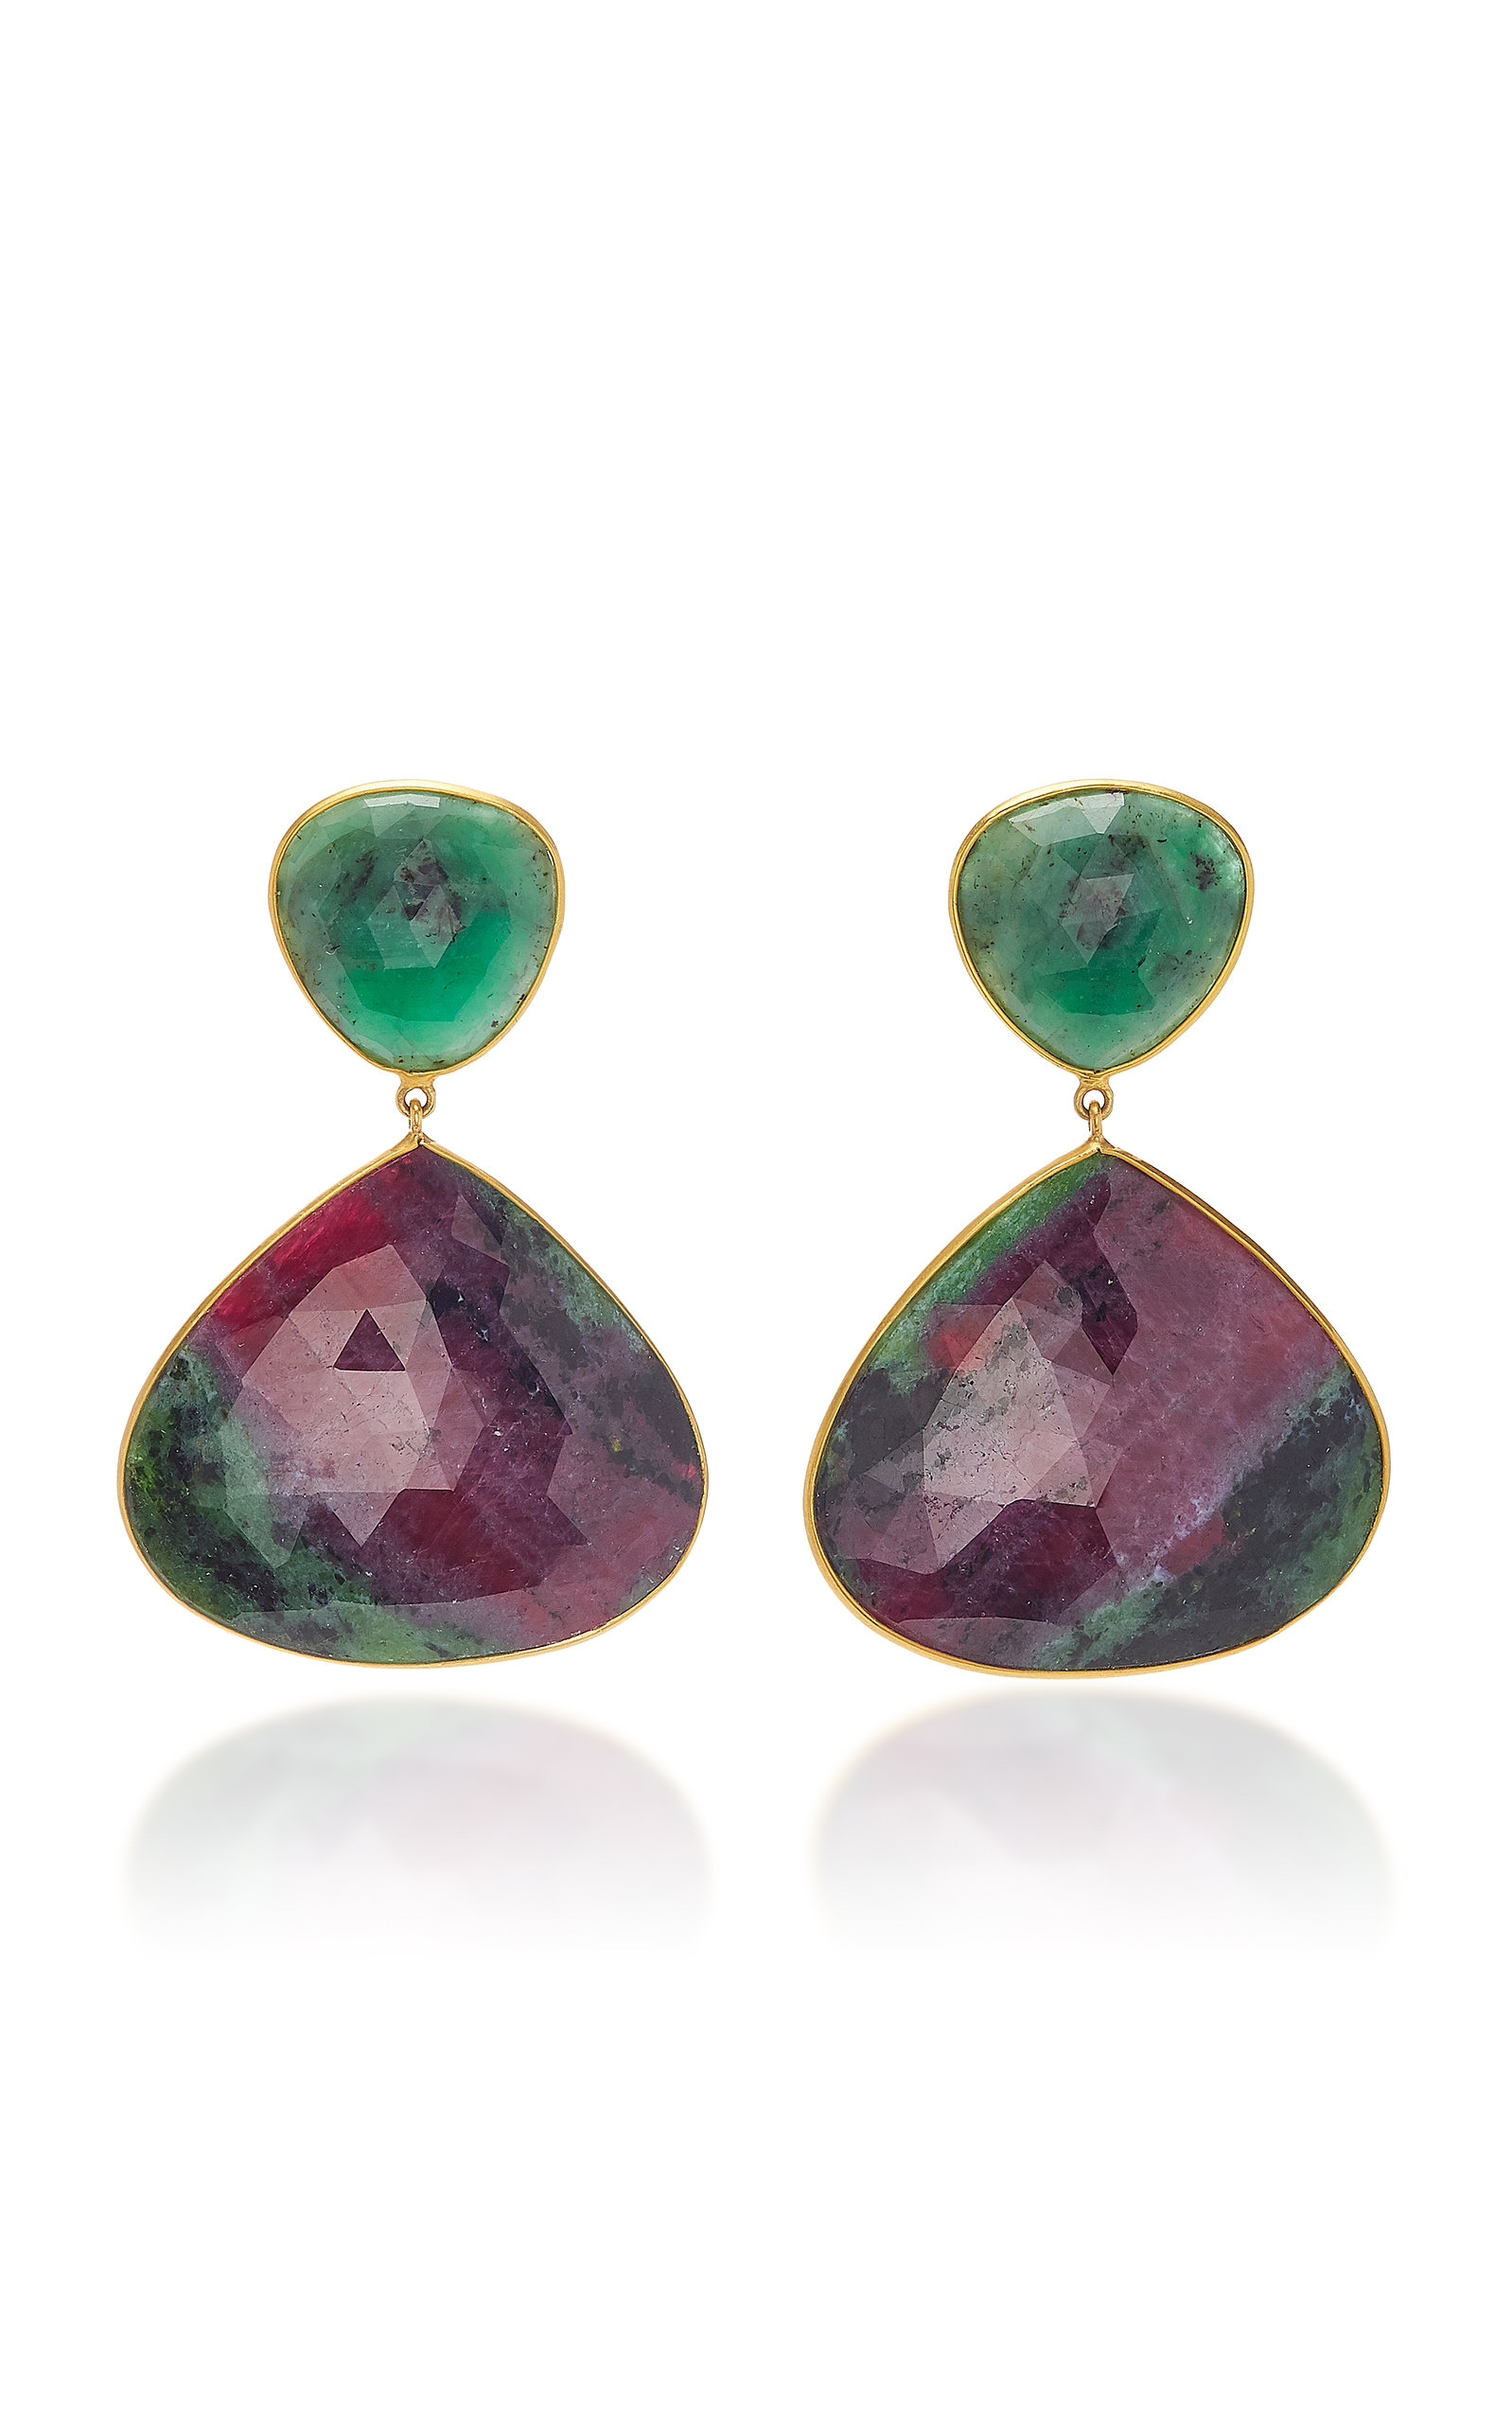 BAHINA 18K Gold Emerald And Ruby-In-Zoisite Earrings in Green